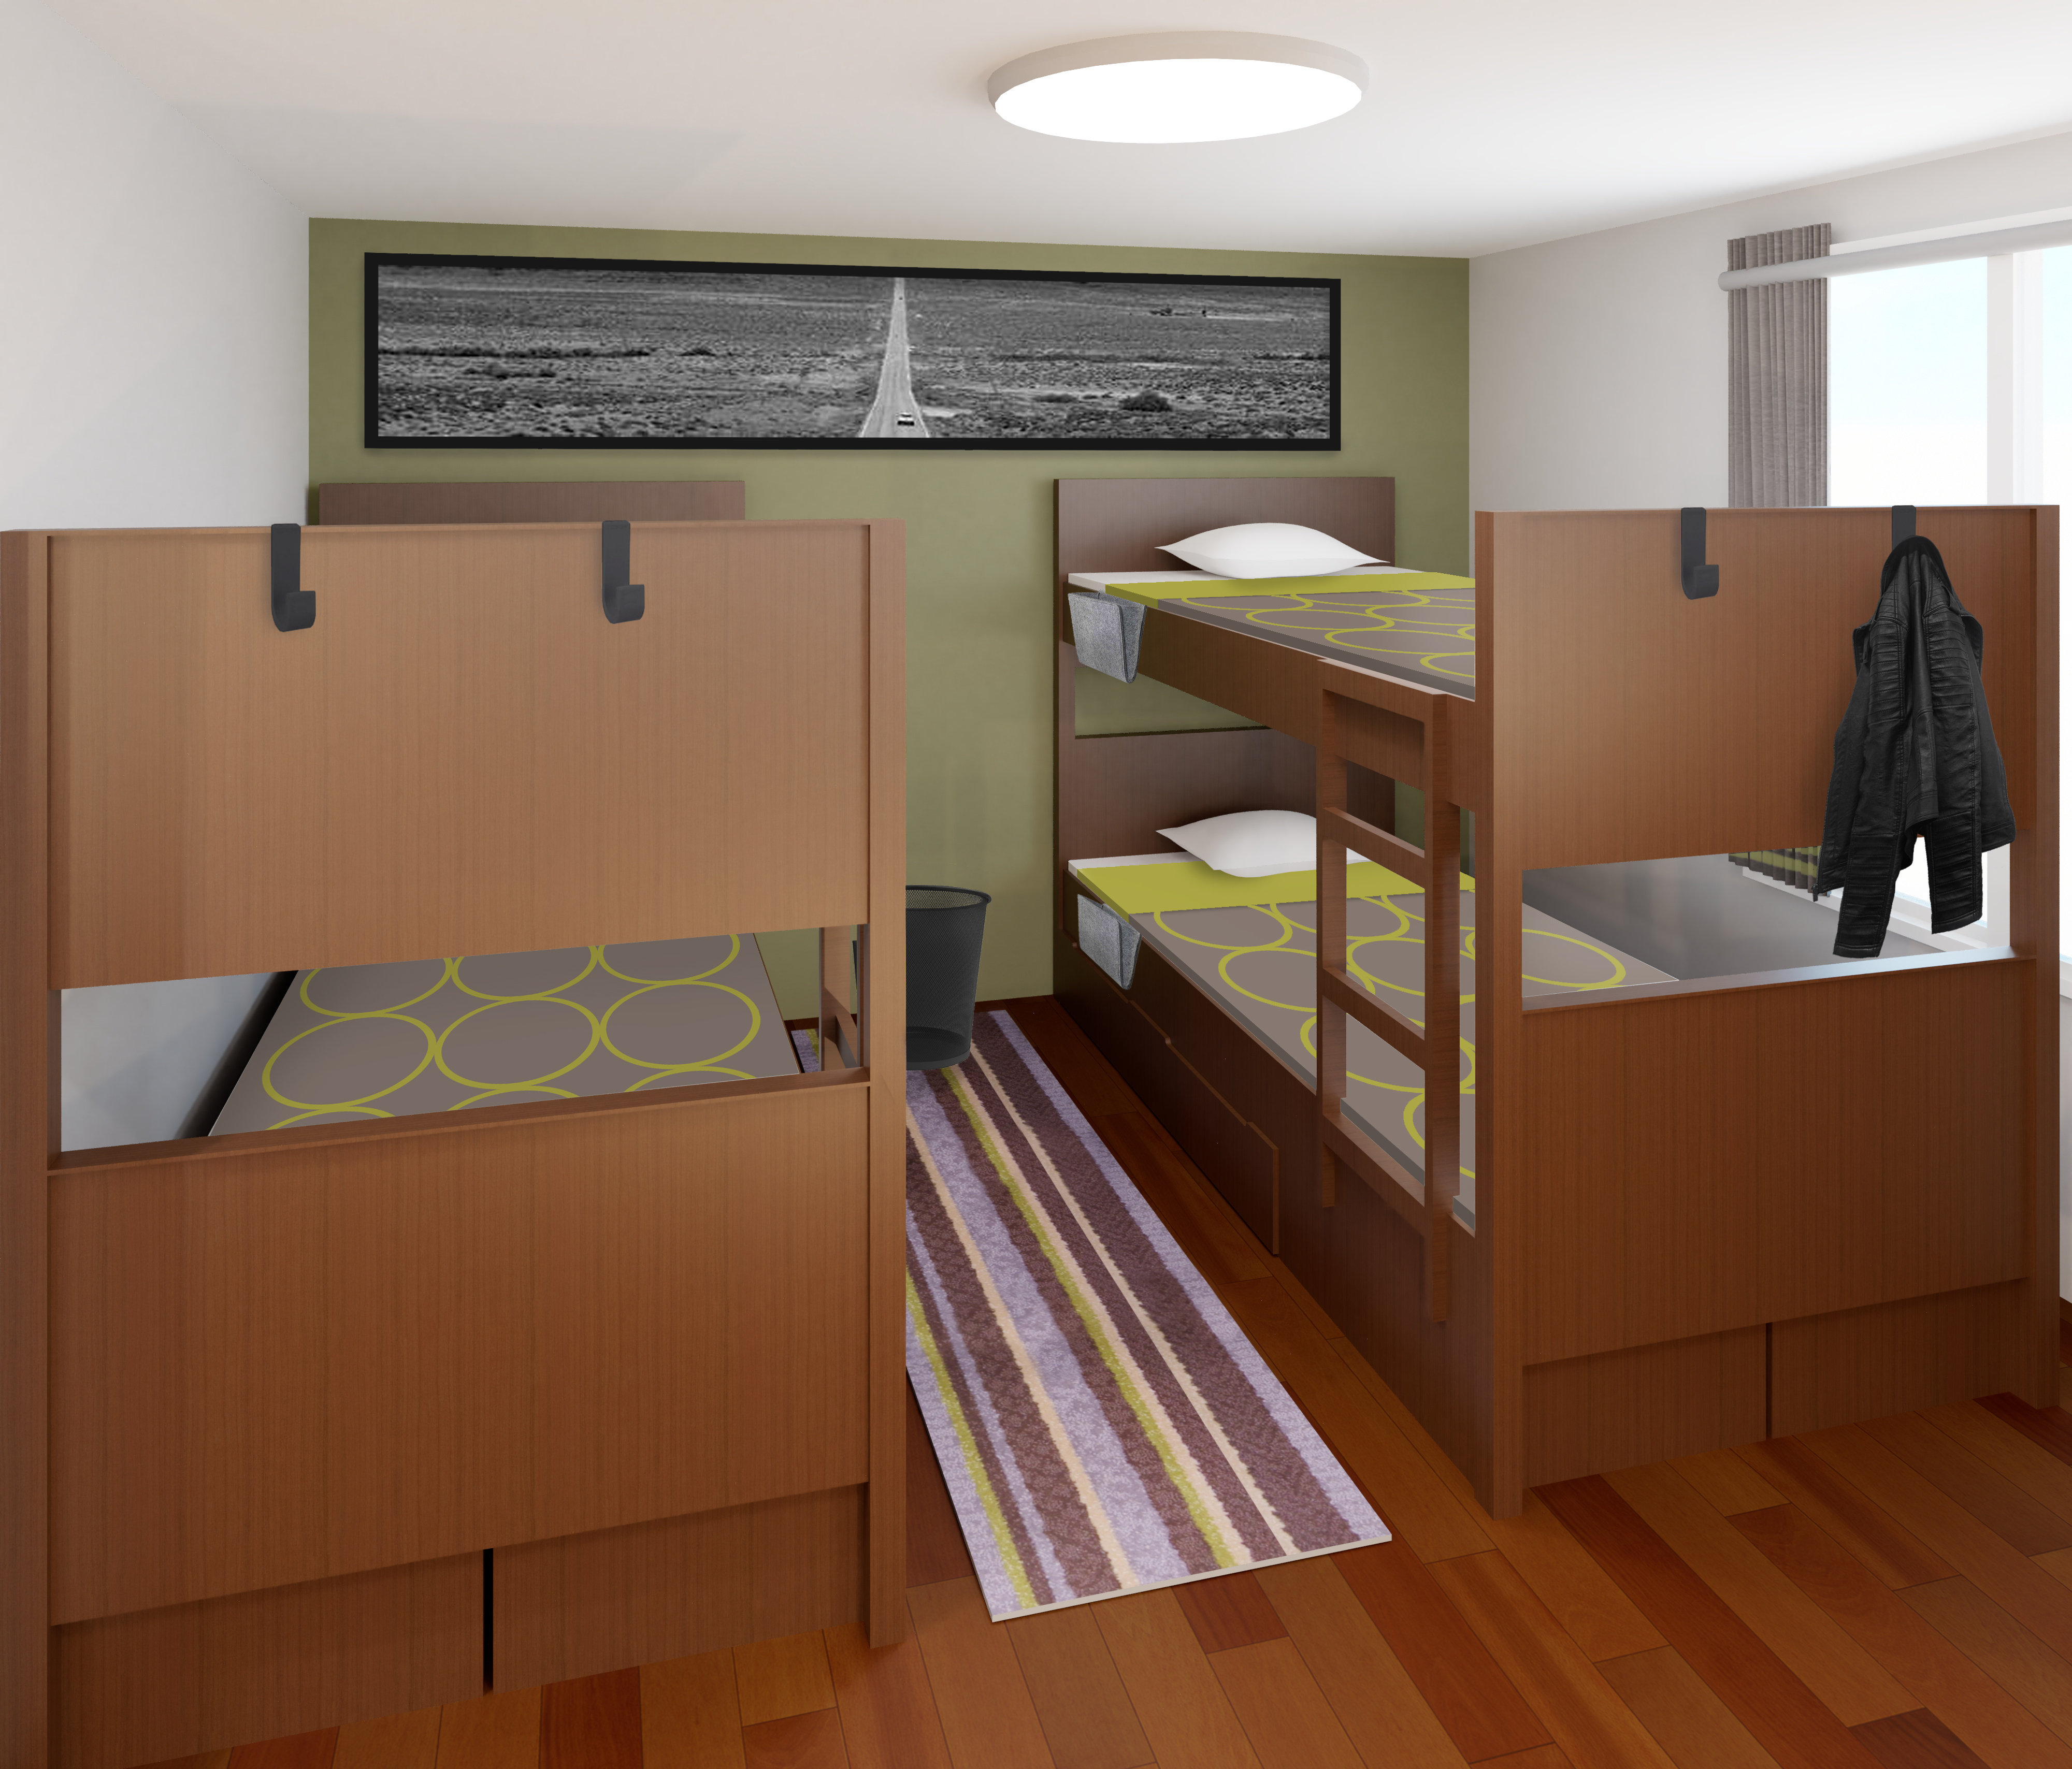 The bunk beds maximize space in the room.